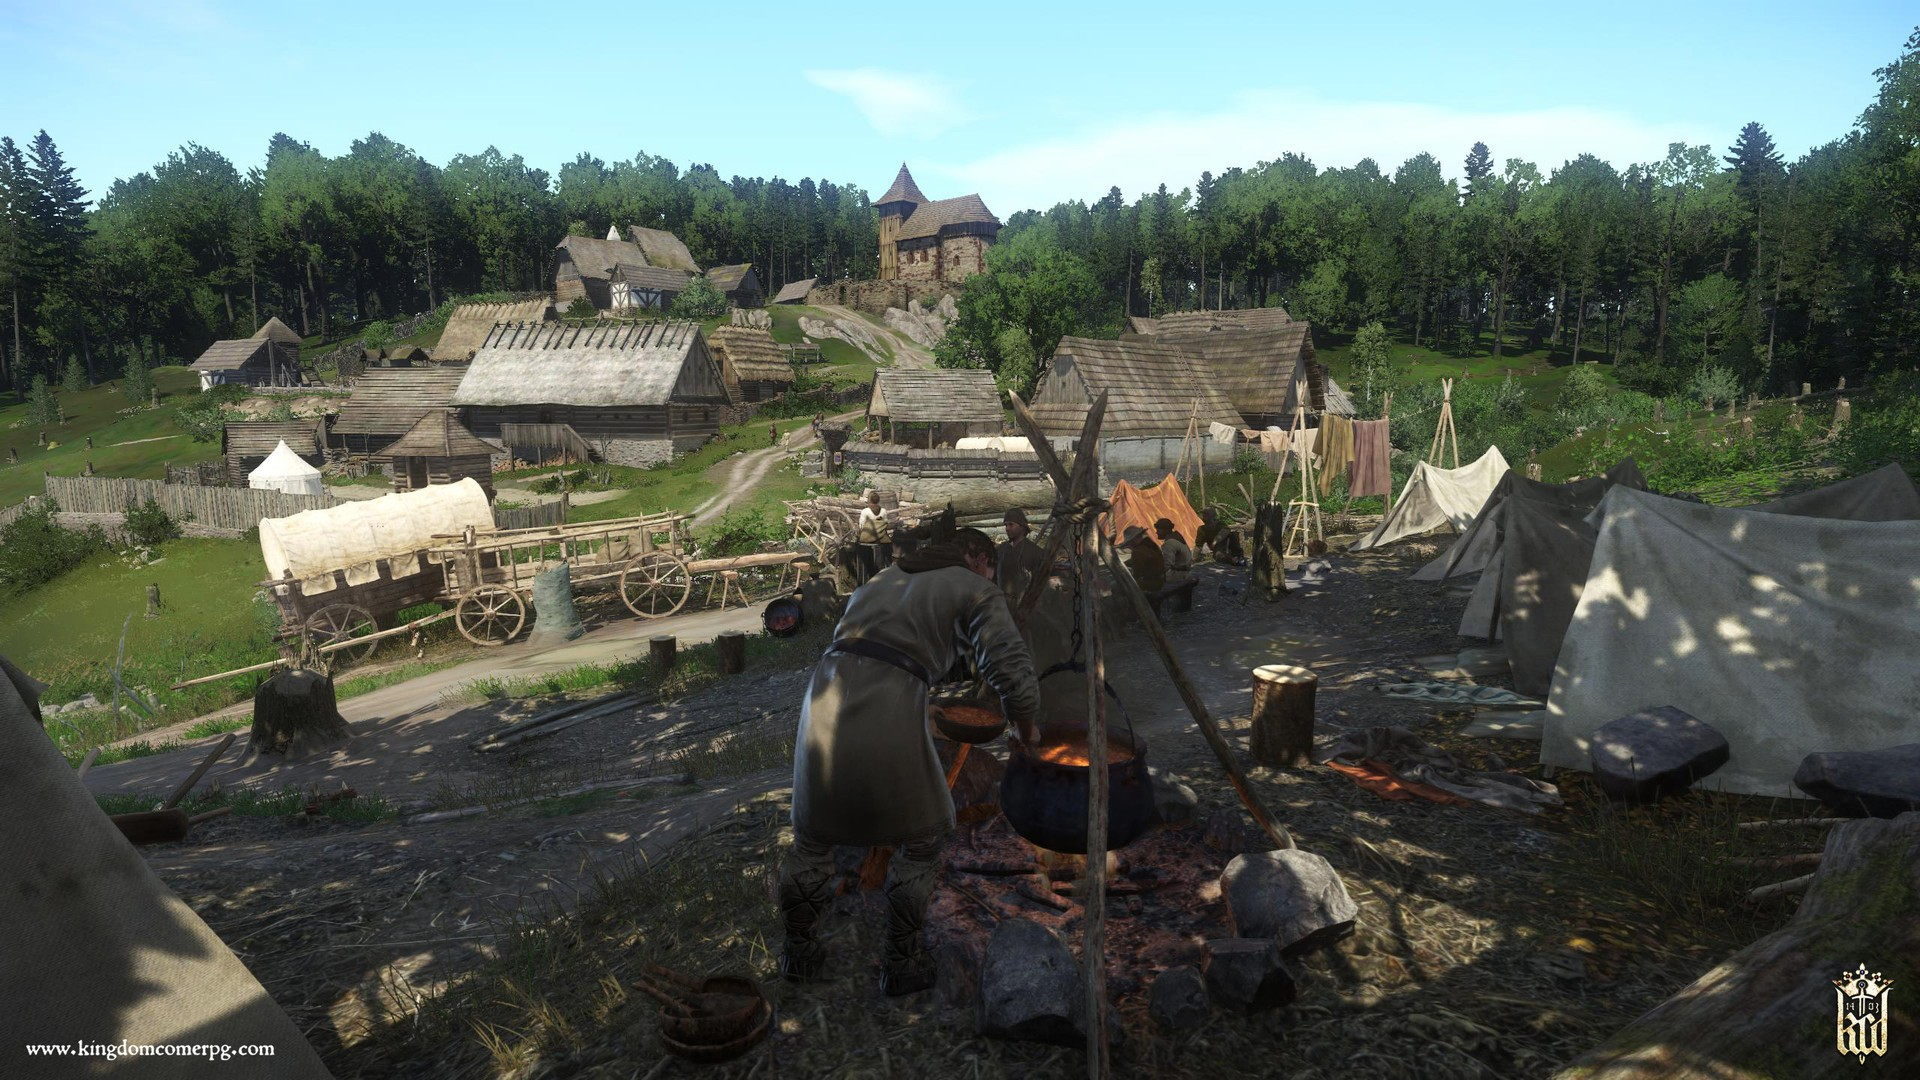 kingdom-come-deliverance-from-the-ashes-wallpaper-2.jpg